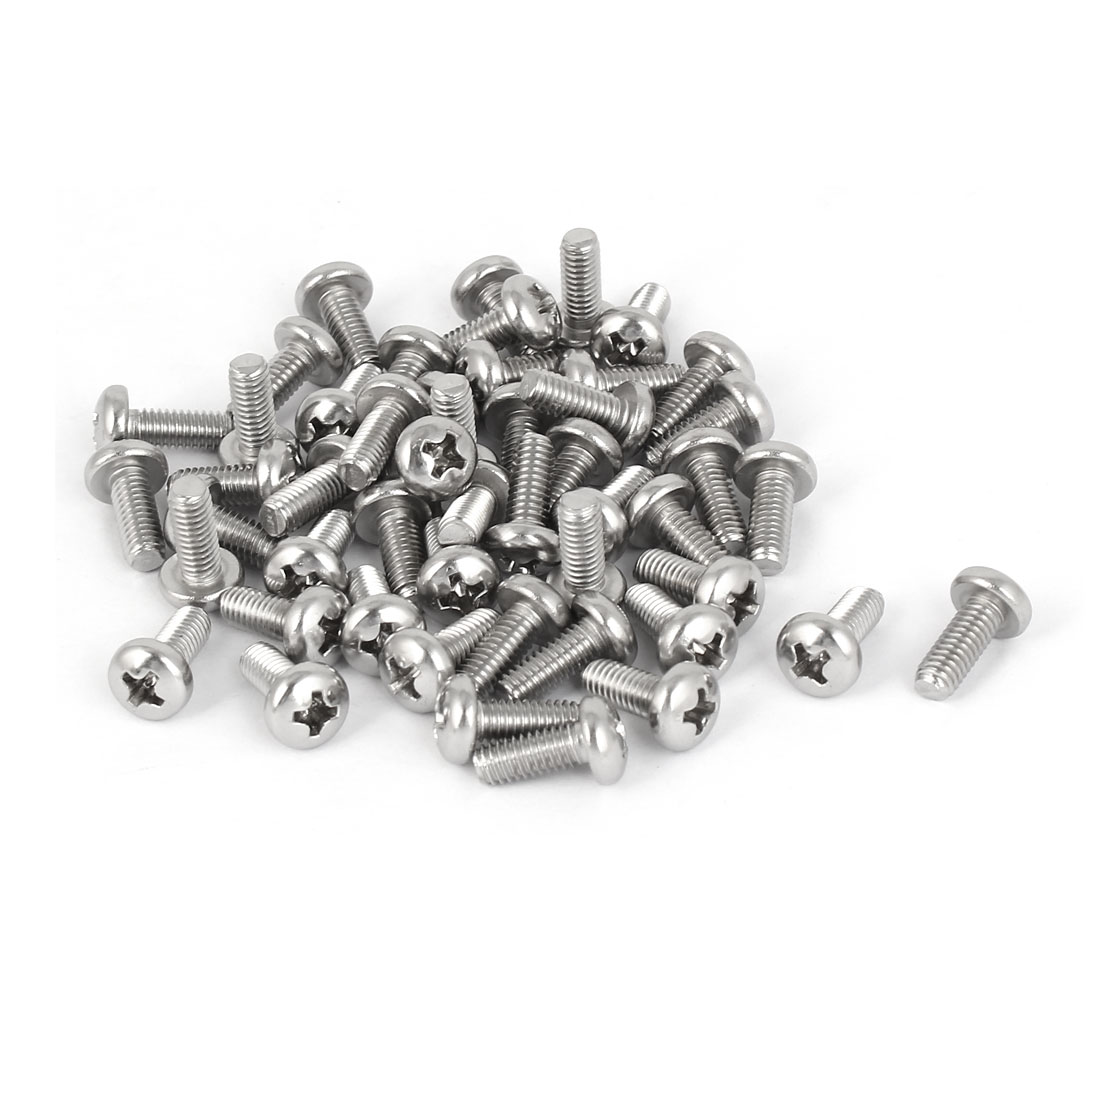 50 Pcs M4x10mm 316 Stainless Steel Phillips Pan Head Machine Screws Fasteners